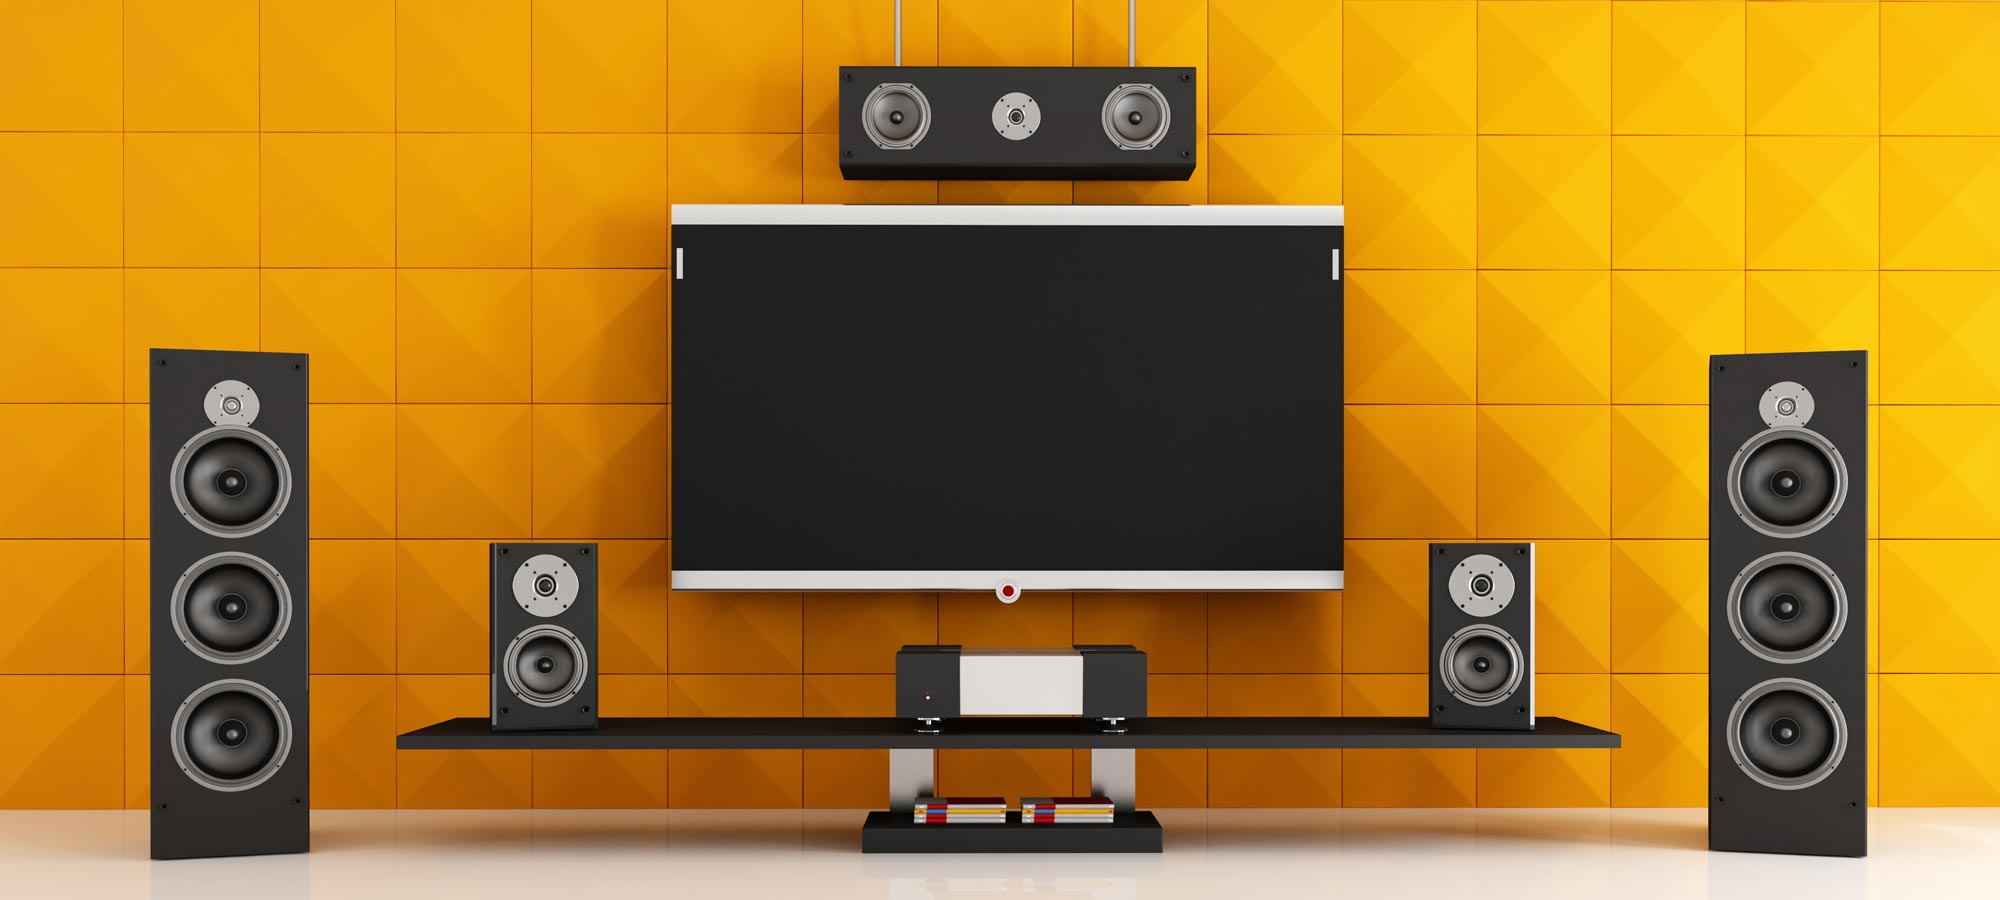 Best Home Theater Systems Adorama Learning Center Multi Channel Surround Sound System